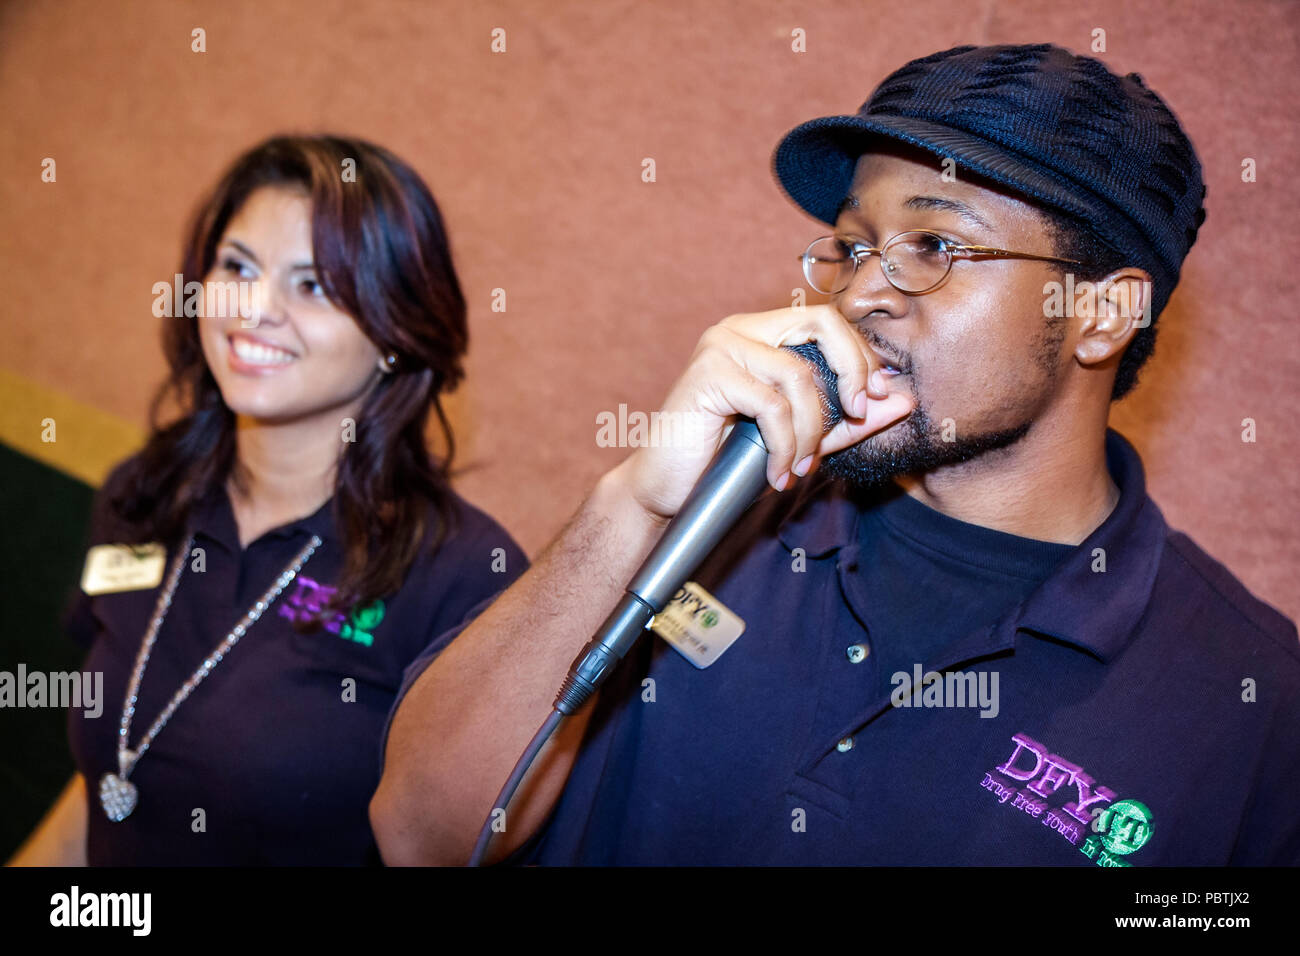 Miami Florida Leadership Training Conference DFYIT Drug Free Youth In Town anti addiction nonprofit organization counselor couns - Stock Image